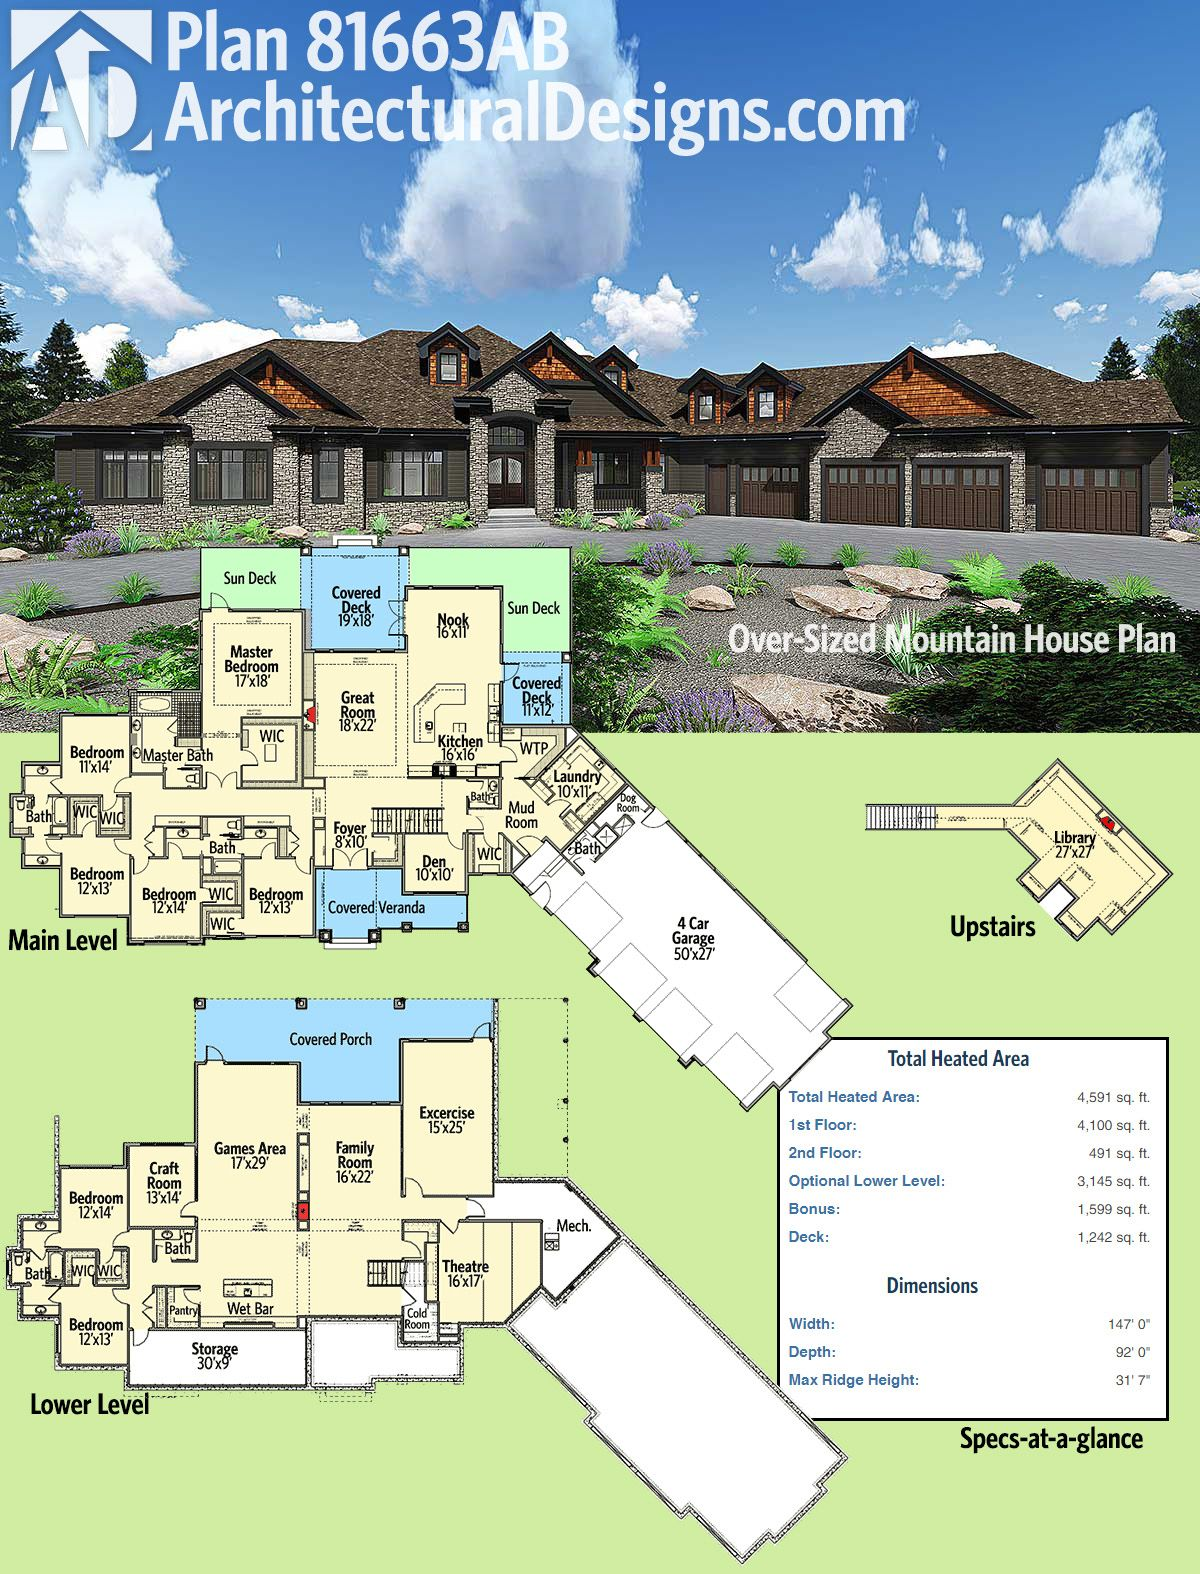 Grand designs angela started building her hut in the garage at home - Architectural Designs Mountain Craftsman House Plan 81663ab Gives You 5 Beds On The Main Floor And